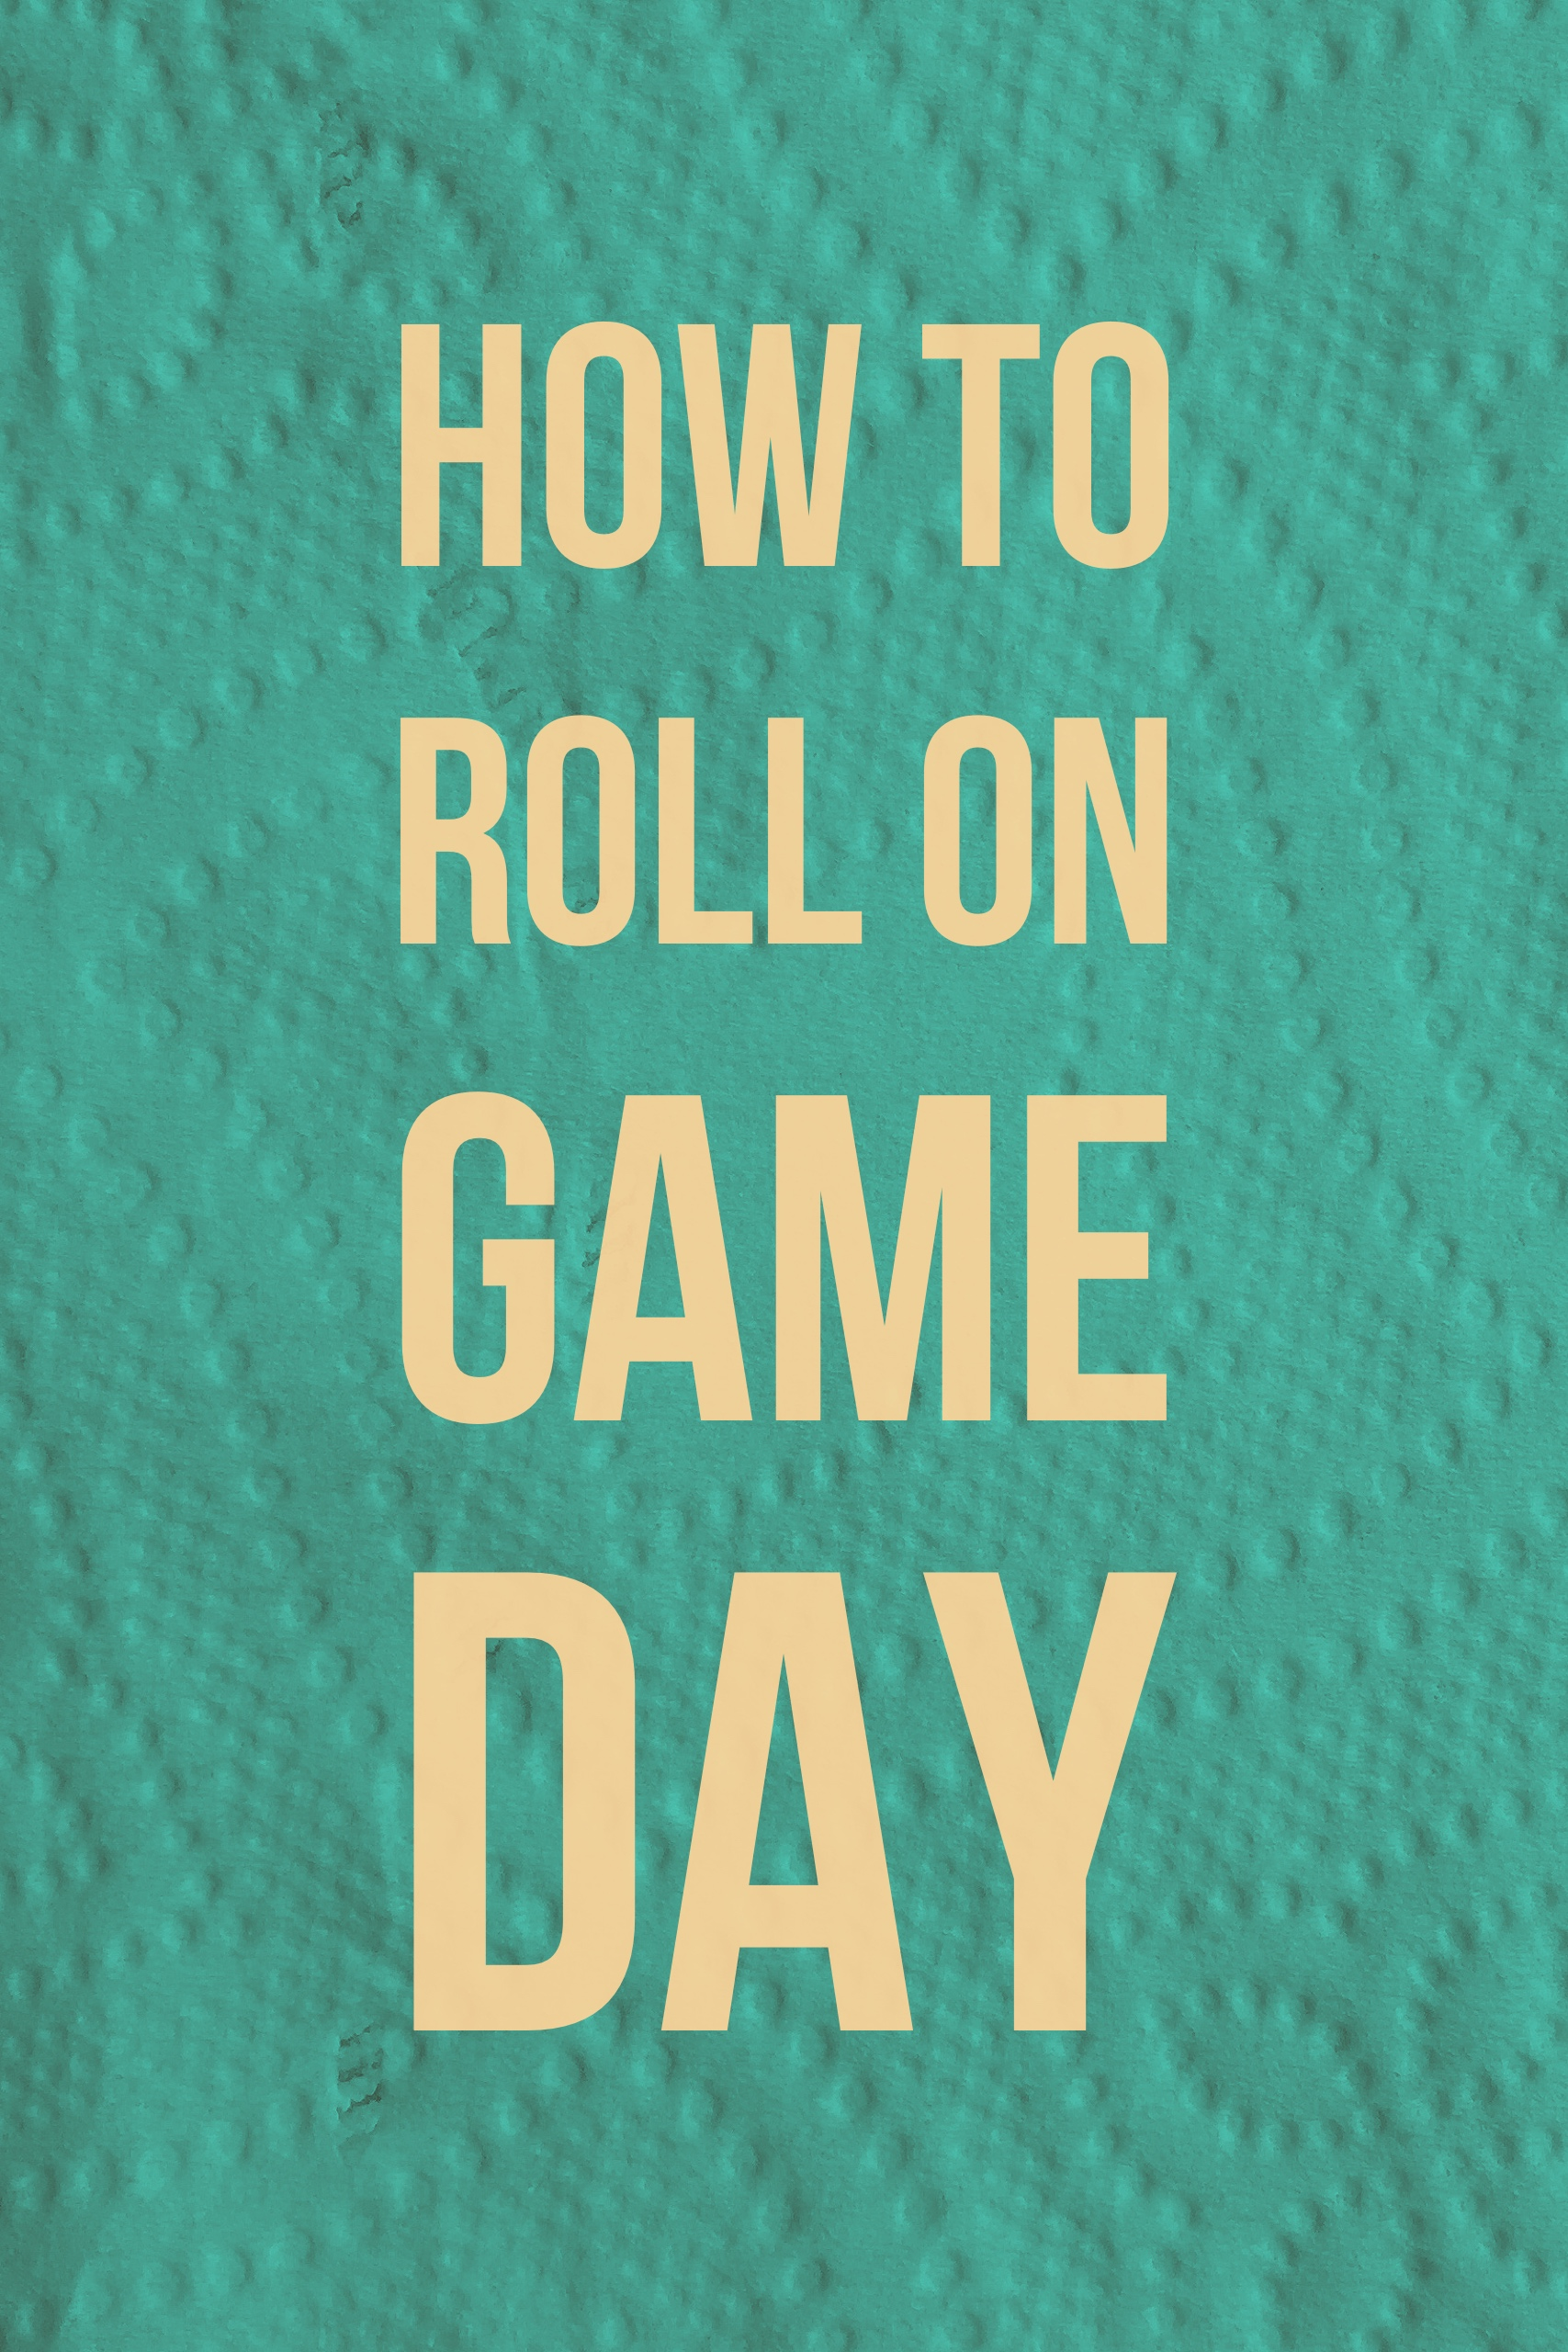 With the biggest game day set, see how to roll with me and get your home essentials bagged at Target! Now...who's ready for some football? 